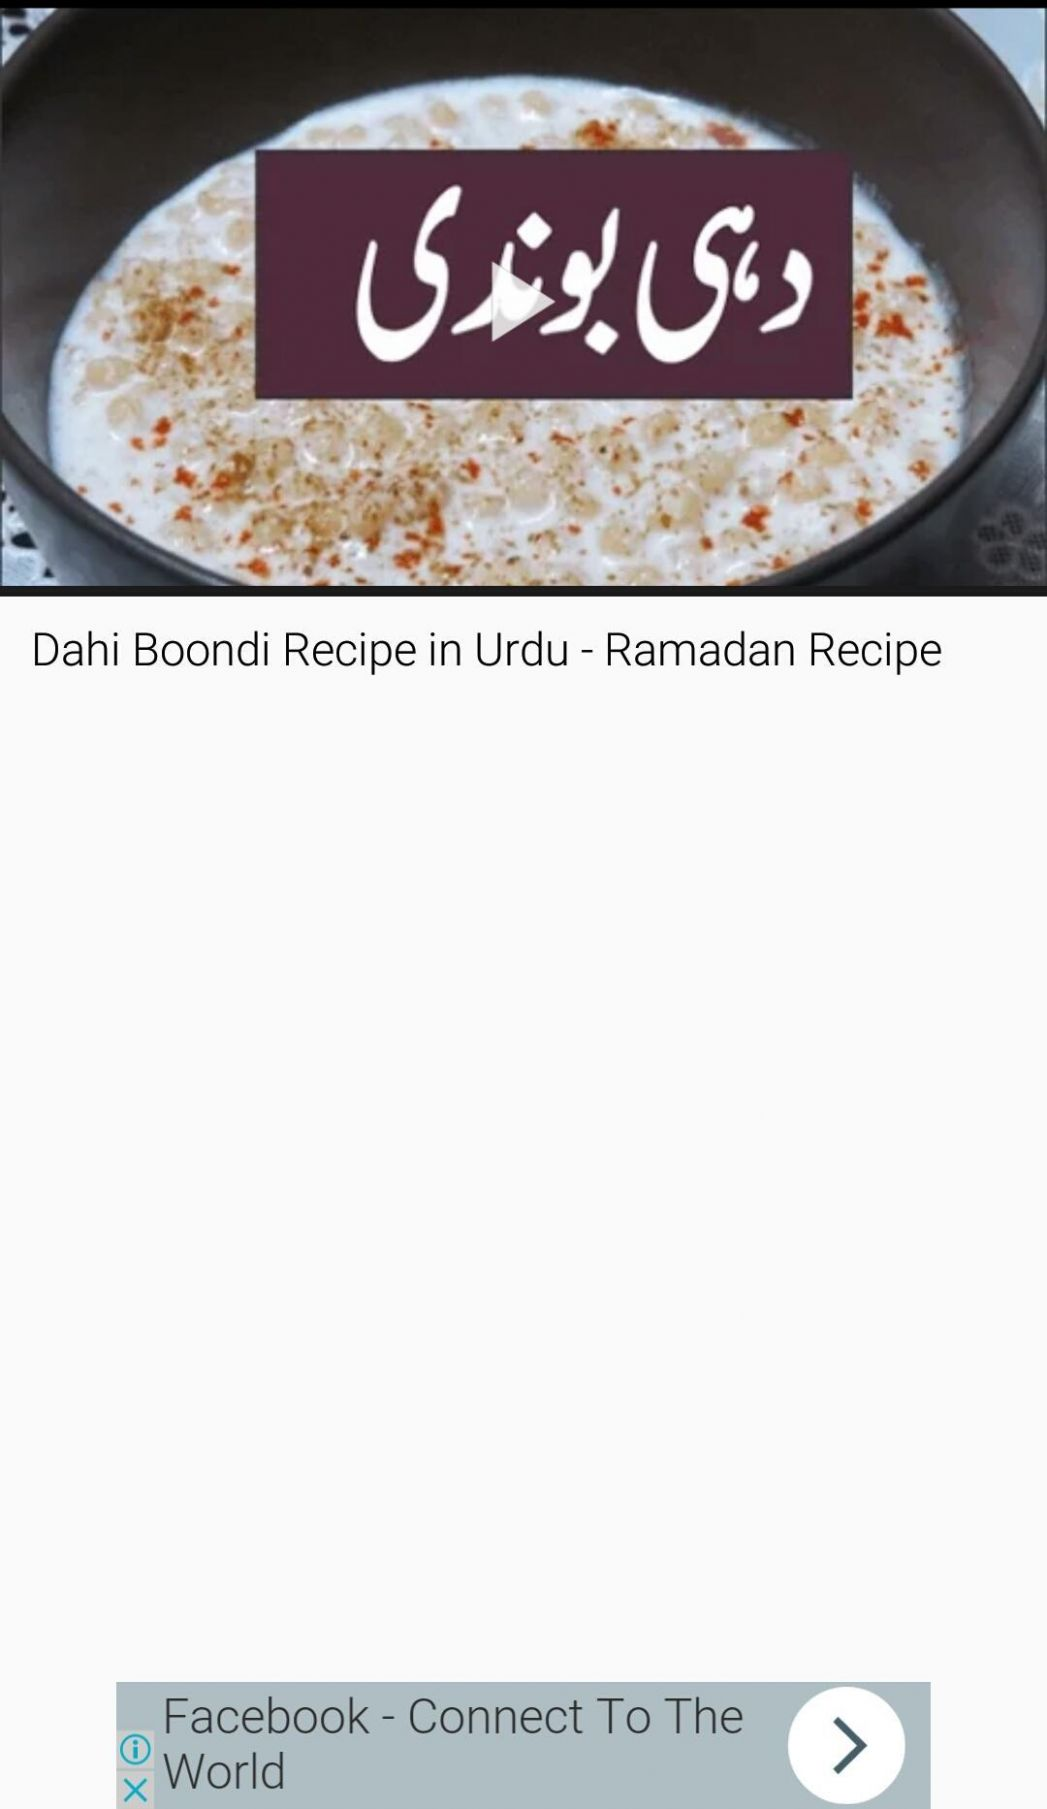 Ramadan Recipes in Urdu VIDEOs for Android - APK Download